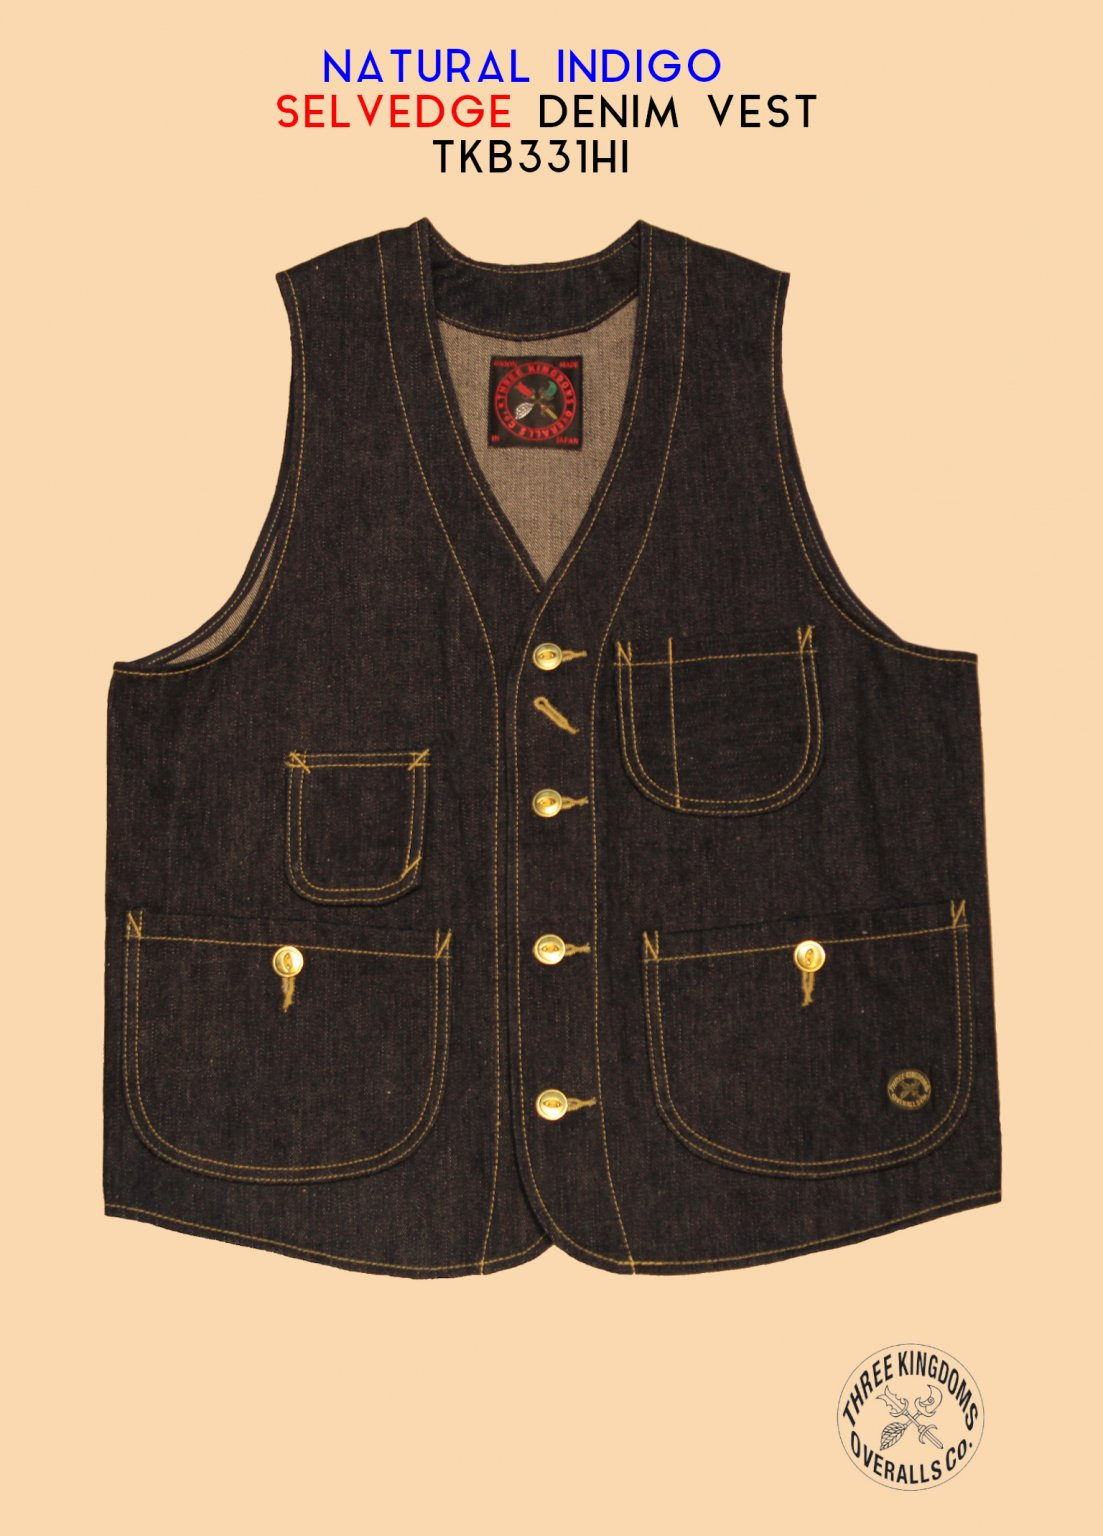 TKB331HI DENIM VEST<img class='new_mark_img2' src='https://img.shop-pro.jp/img/new/icons14.gif' style='border:none;display:inline;margin:0px;padding:0px;width:auto;' />